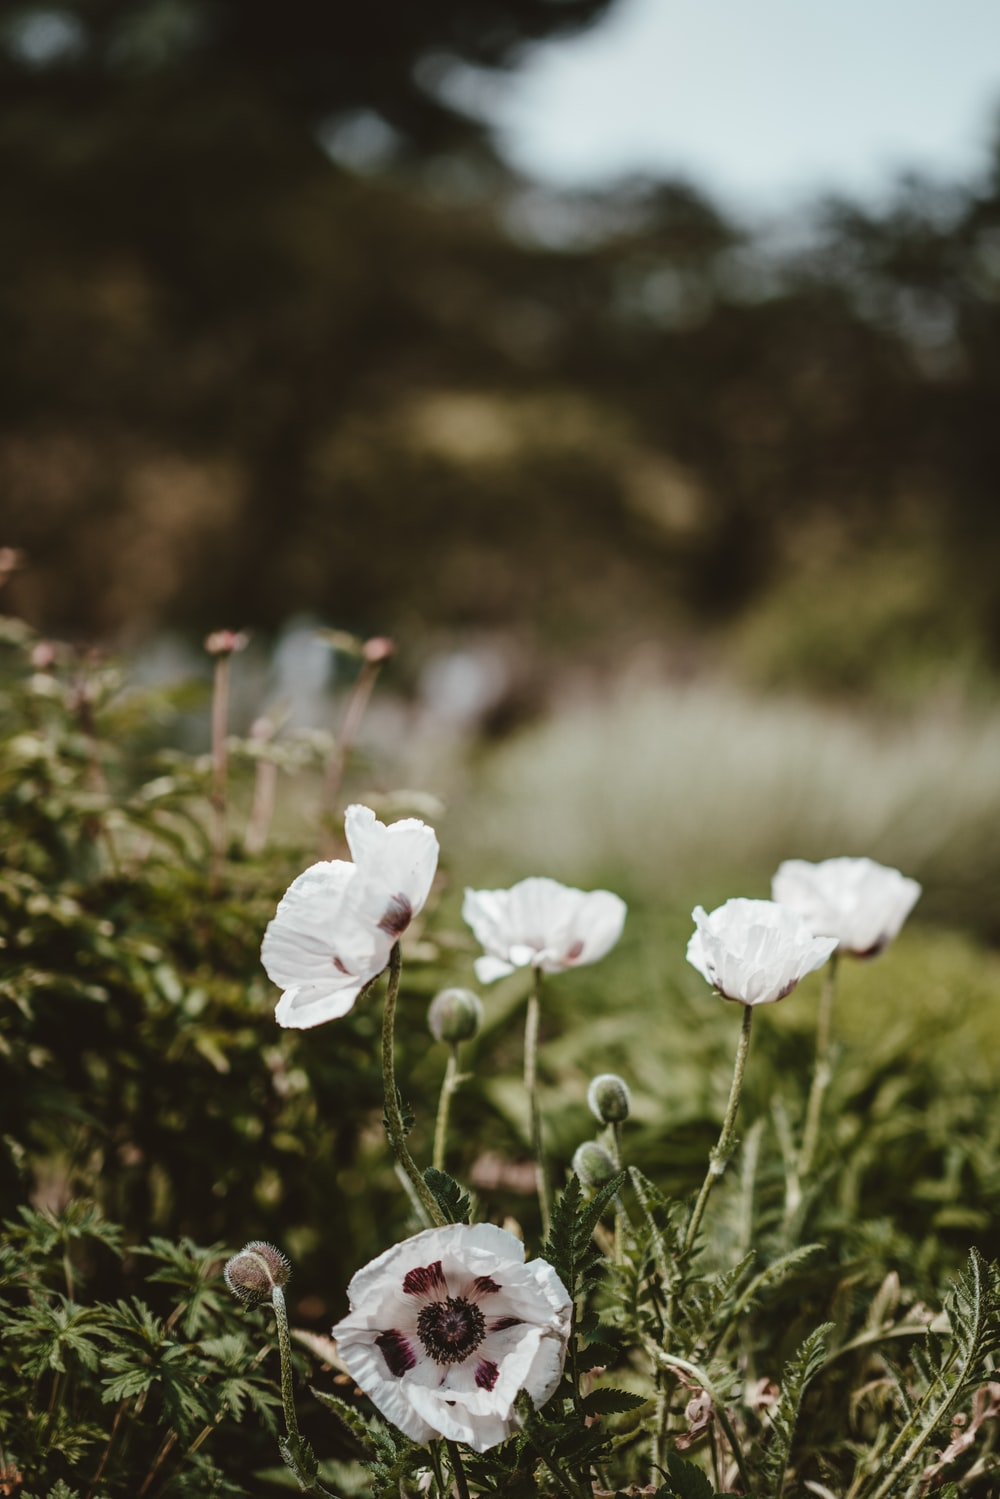 White poppy pictures download free images on unsplash closeup photography of white clustered petal flowers mightylinksfo